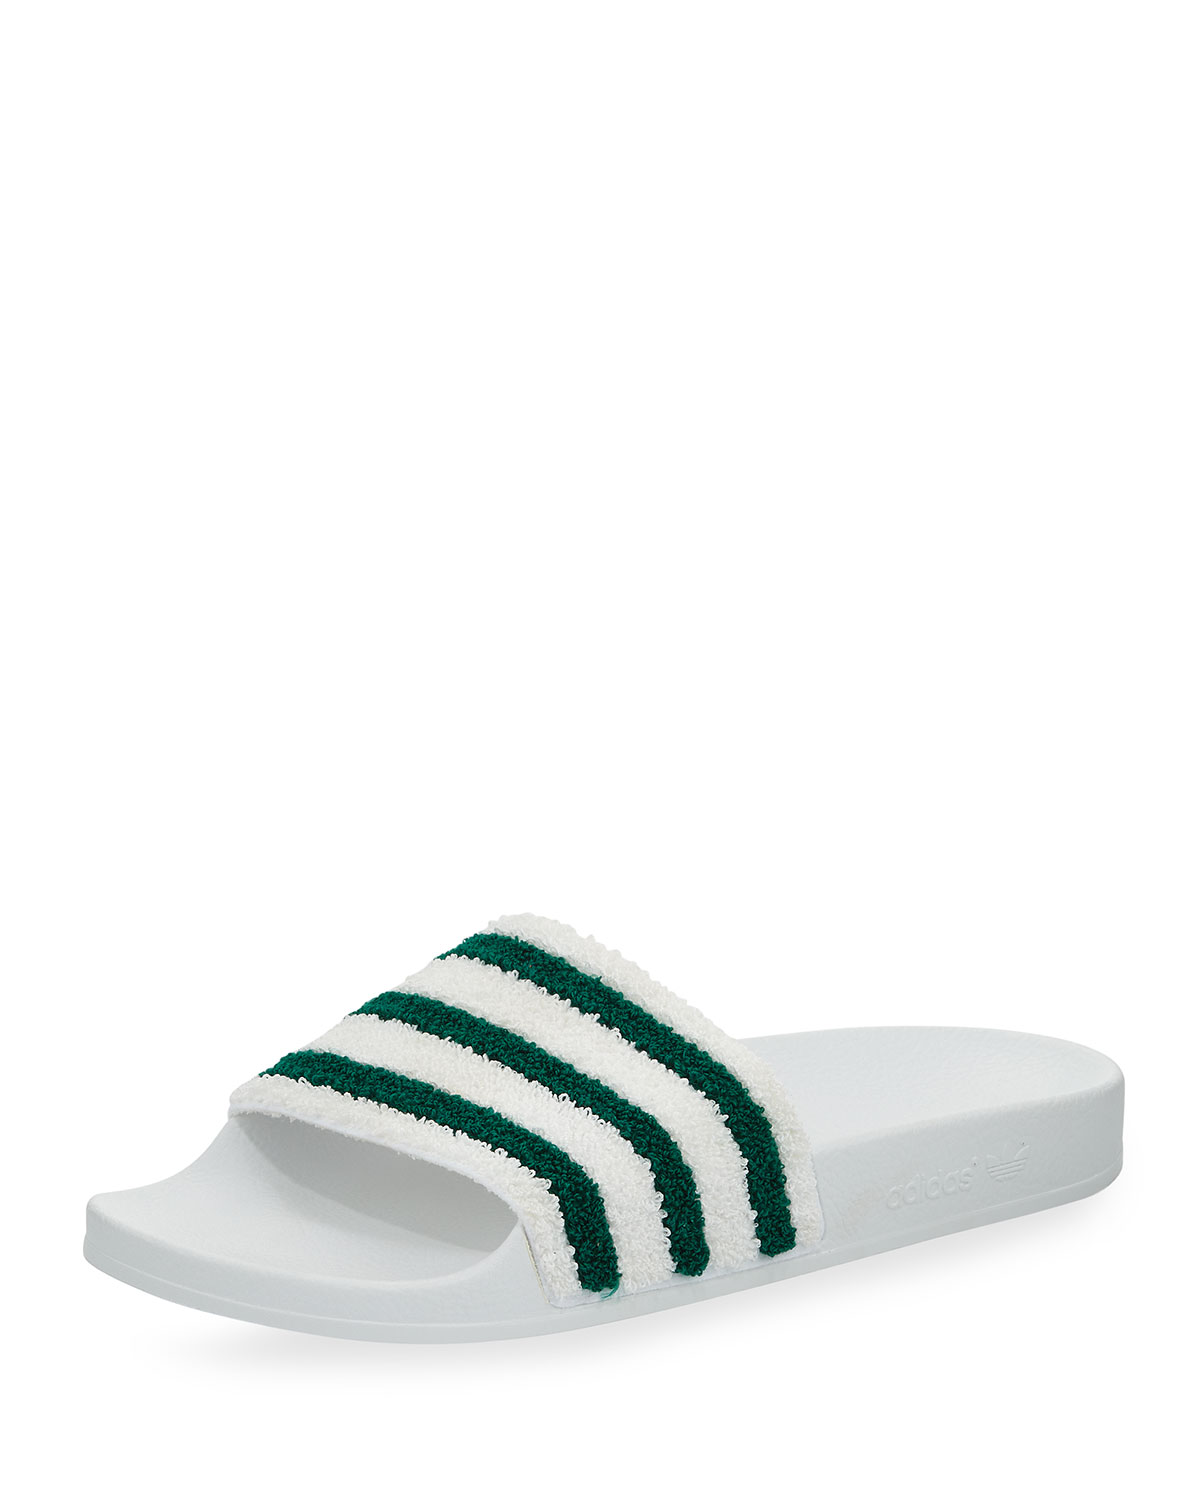 577a4f849 Adidas Adilette Striped Slide Sandal